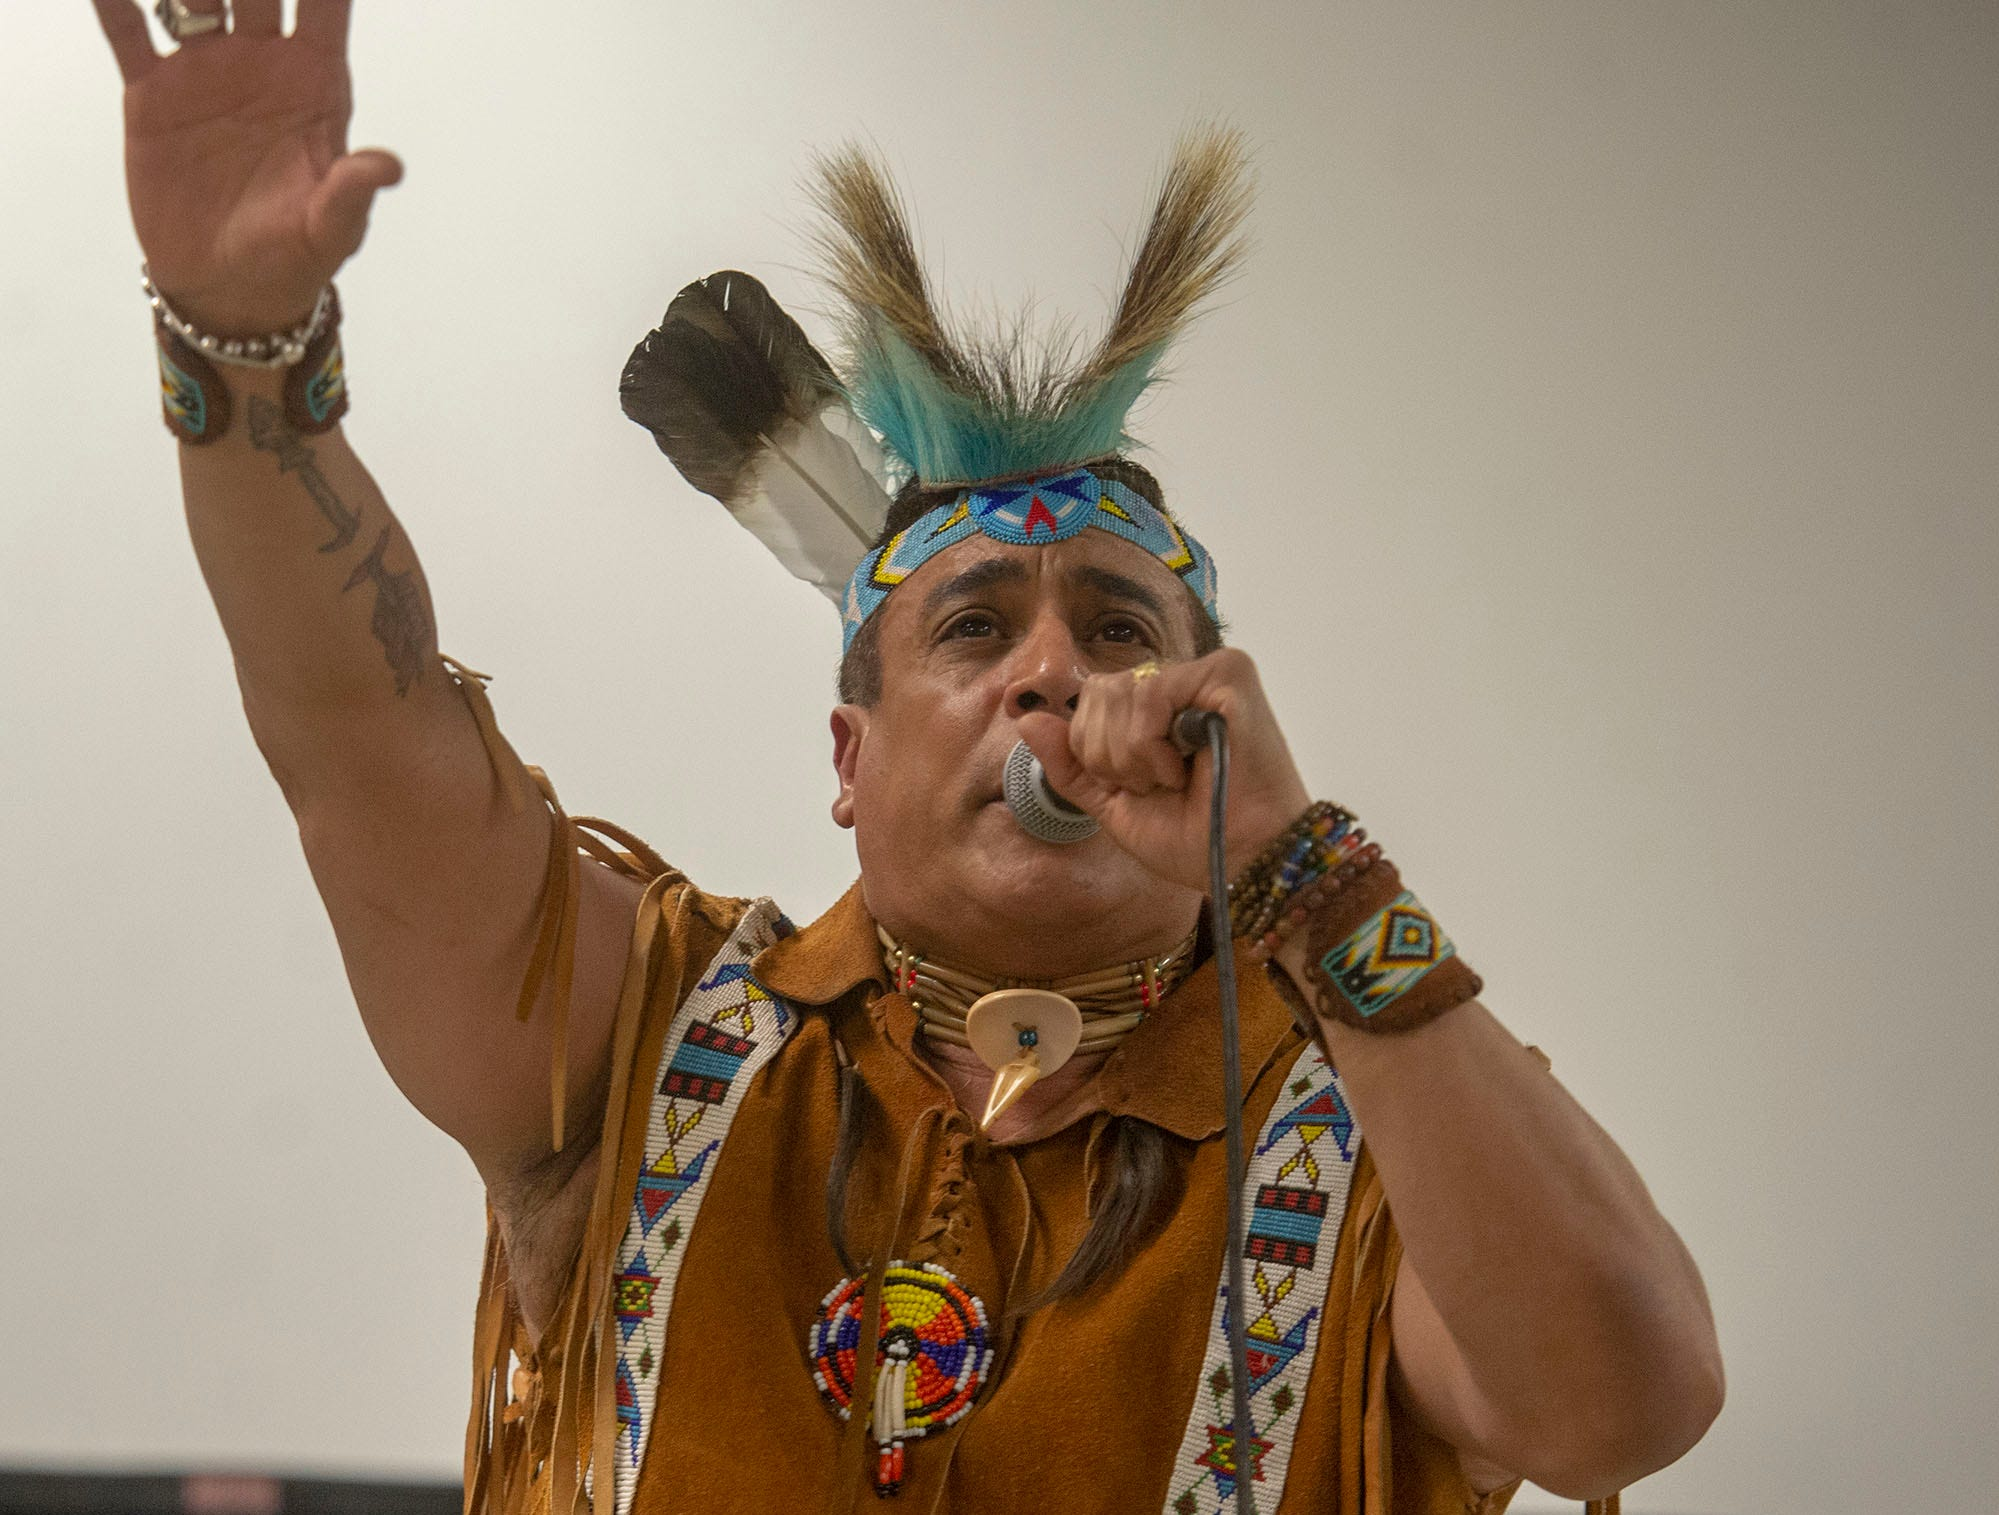 An original member of Village People, Felipe Rose closes one of his original songs with a Native American prayer. He sang Saturday at the White Rose Comic Con, which runs through Sunday, March 24, 2019 at Utz Arena of the York Fairgrounds.